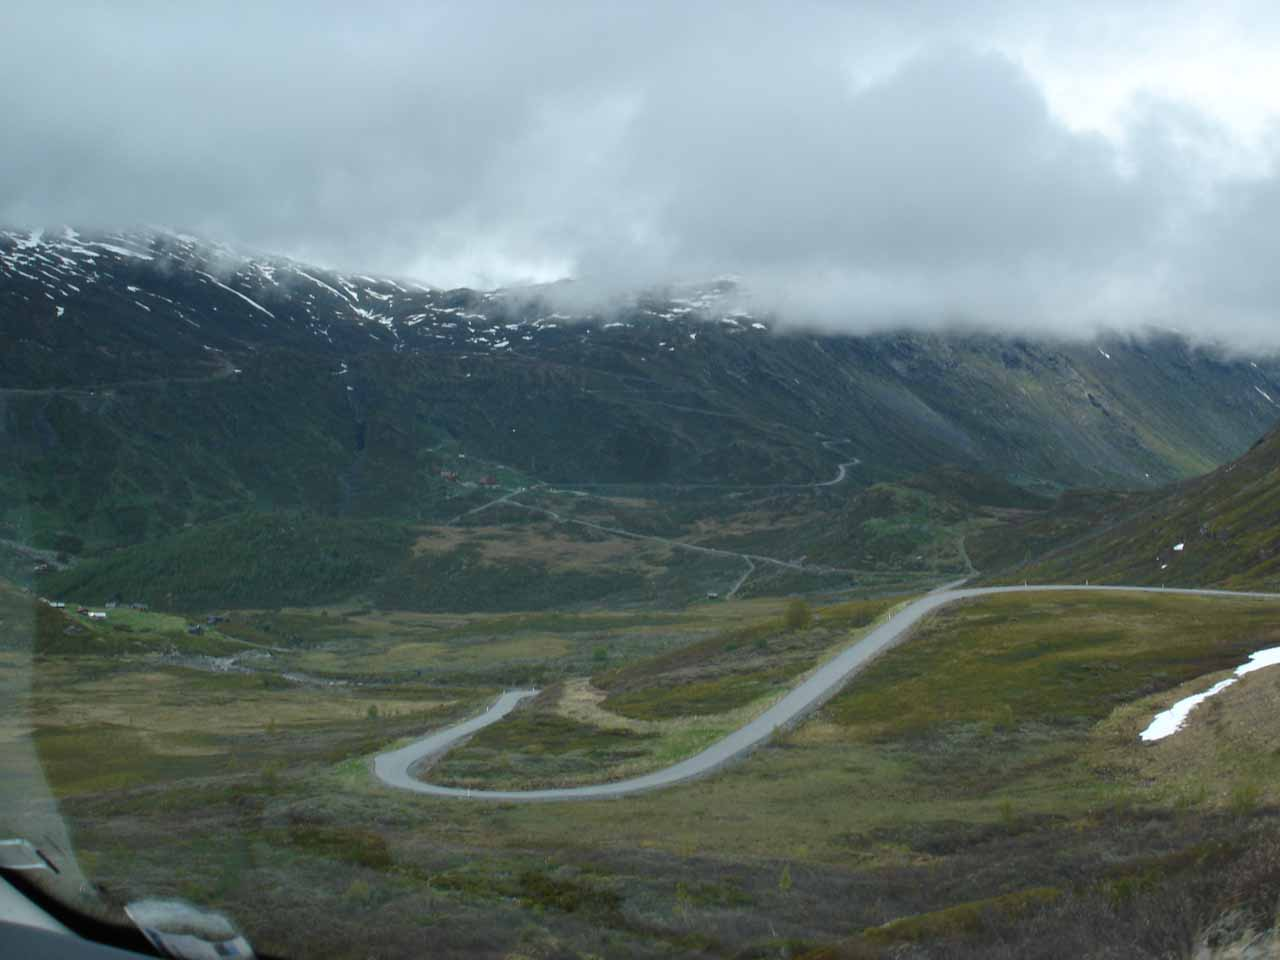 This was the view of the curvy switchbacks as we made our way down towards Turtagrø